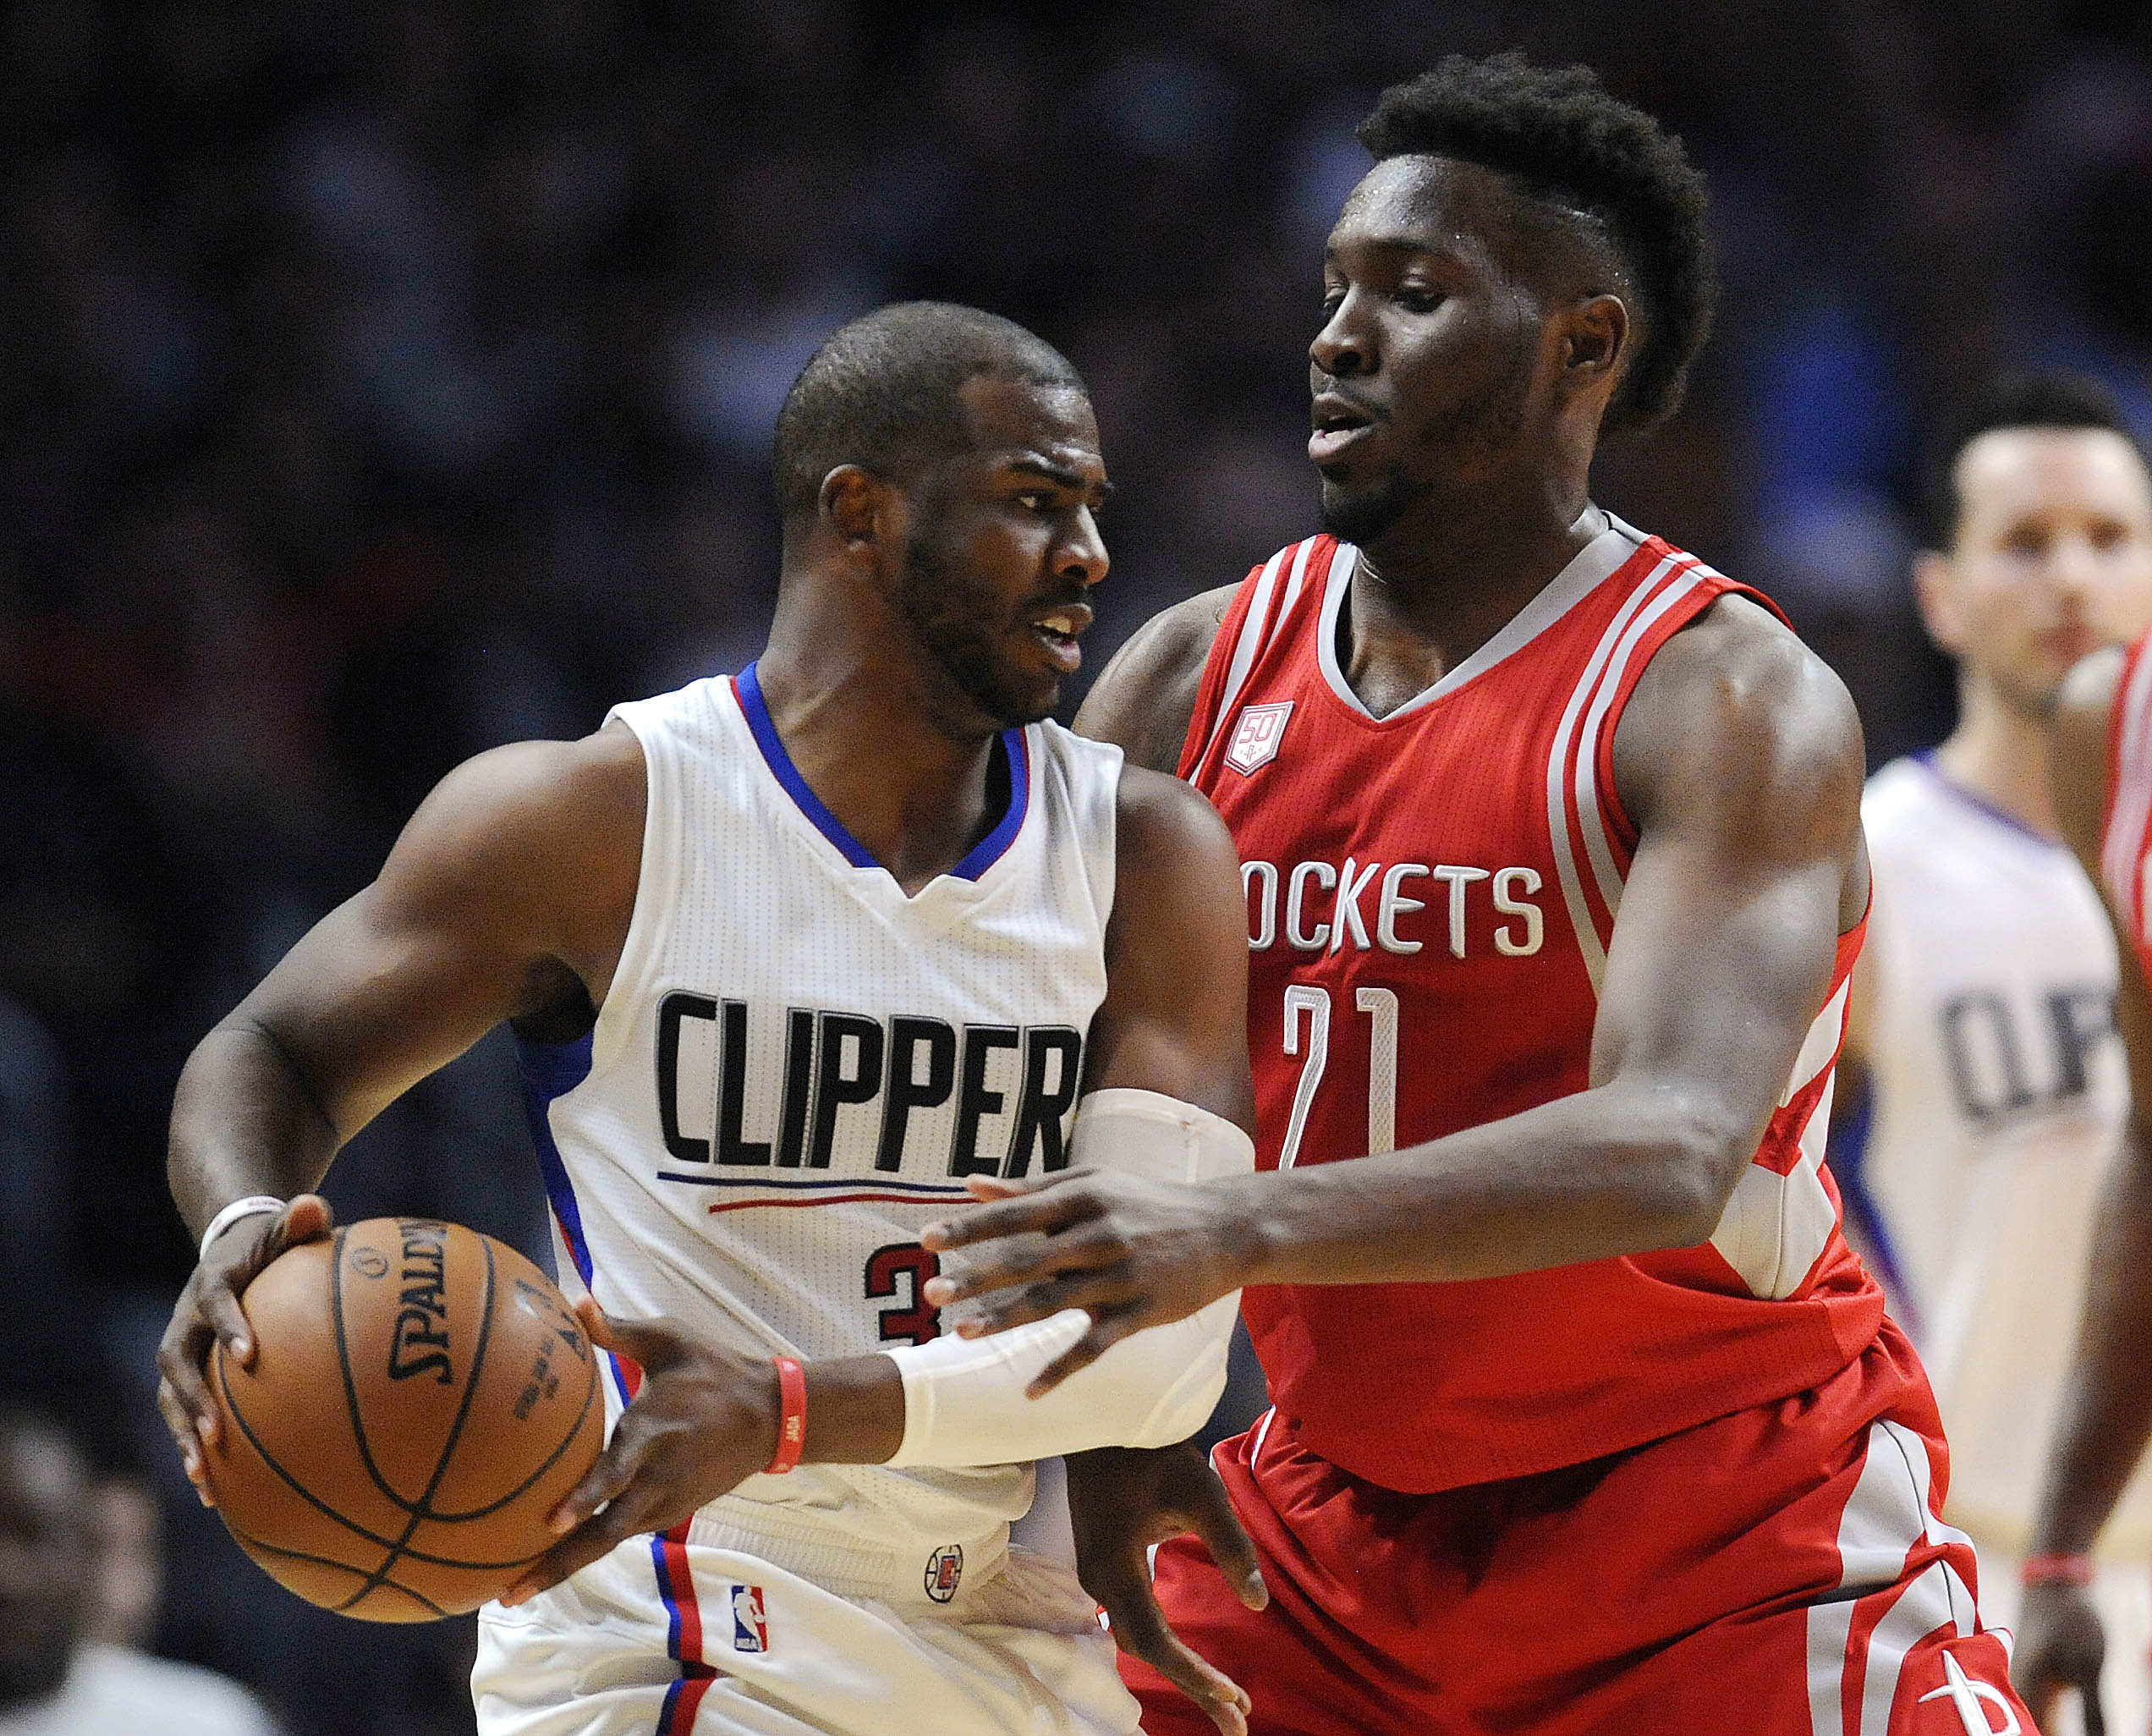 10005638-nba-houston-rockets-at-los-angeles-clippers